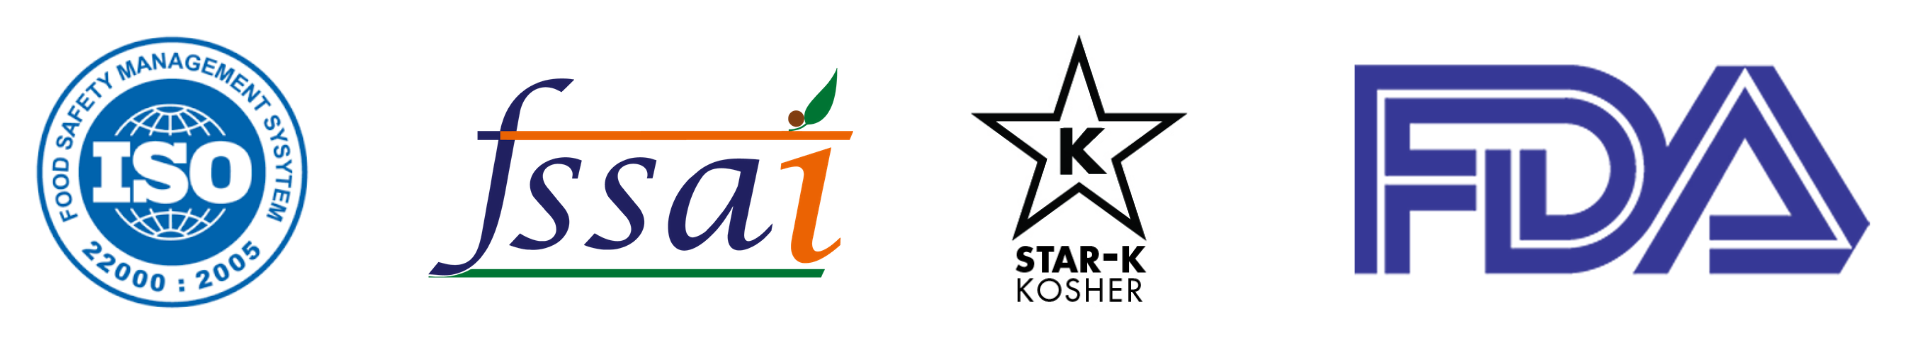 Indira Foods Manufacturing Facilities Certifications ISO 22000:2005, FSSAI, Star-K Kosher Certified, US FDA Whitelisted